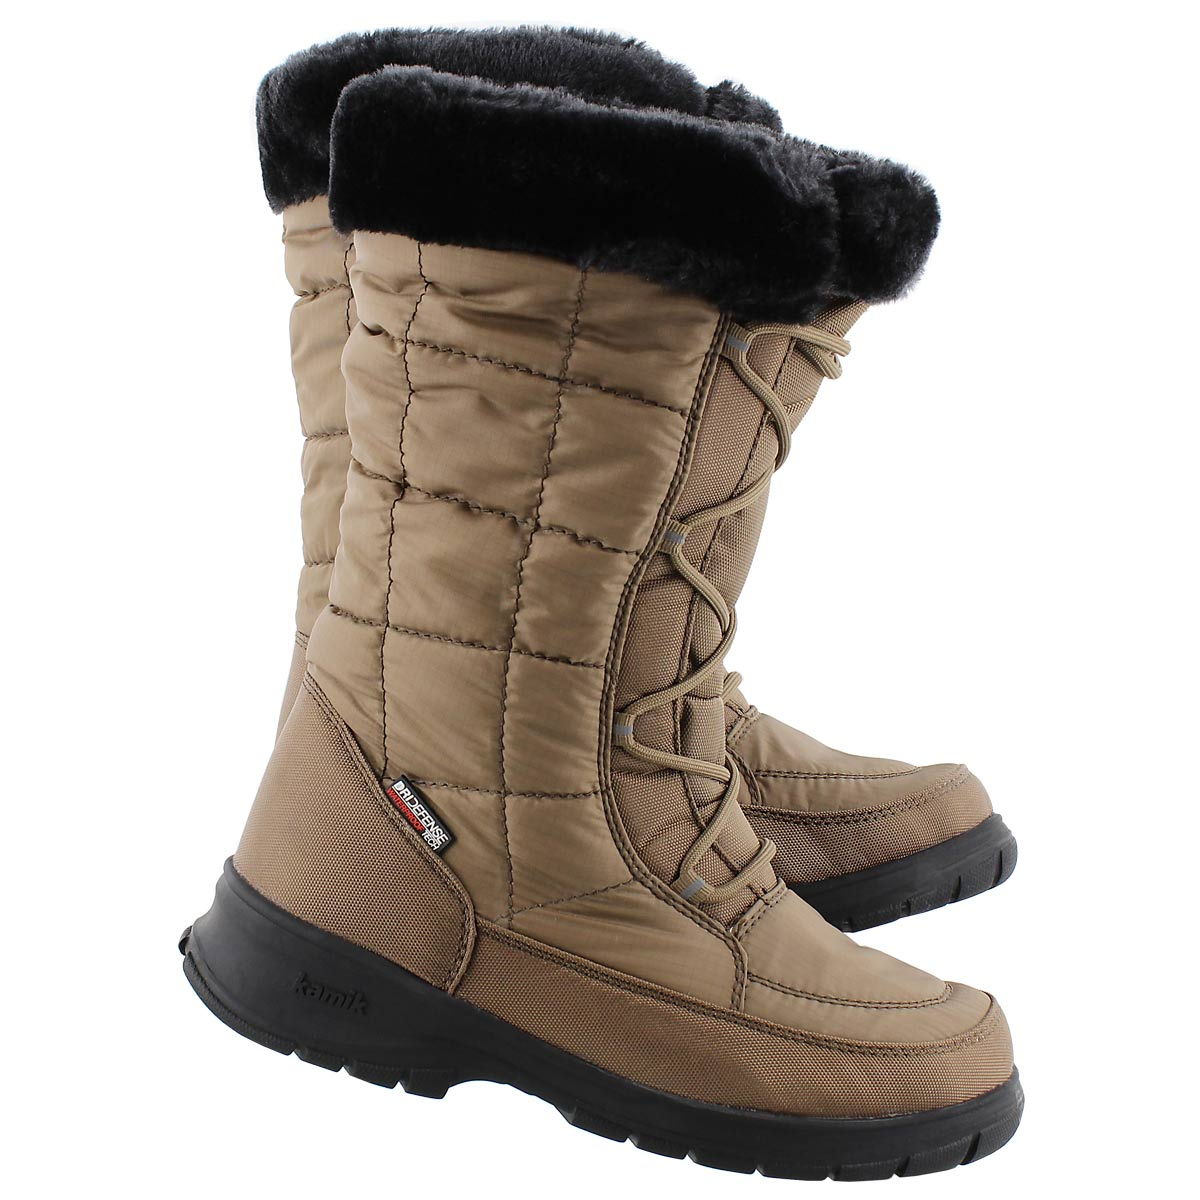 Kamik Women's New York 2 Waterproof Winter Boot- WIDE